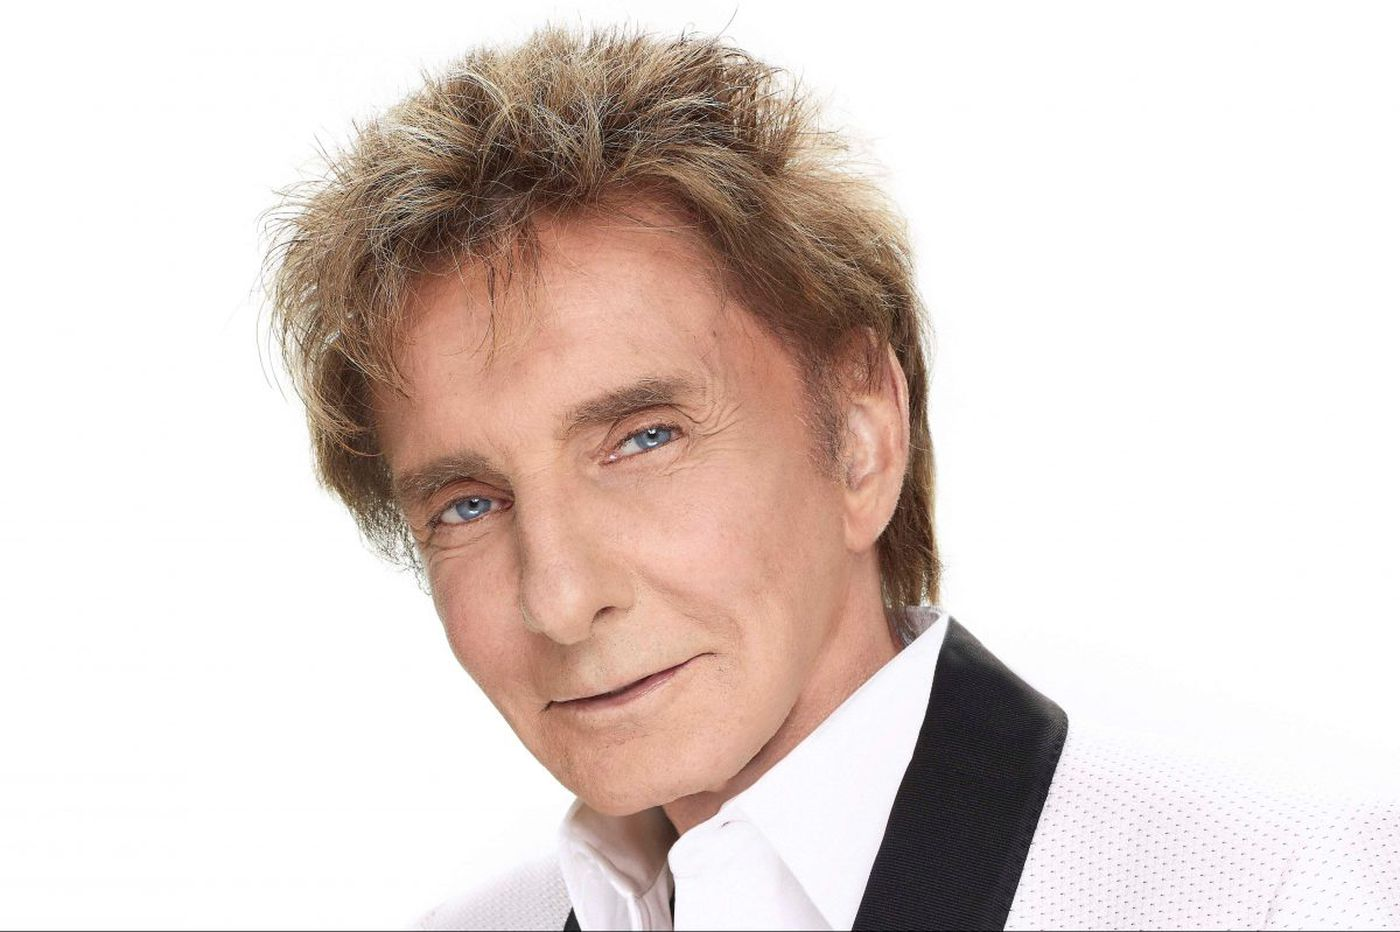 Barry Manilow reveals the Philly nightclub he played with Bette Midler that inspired him to go solo